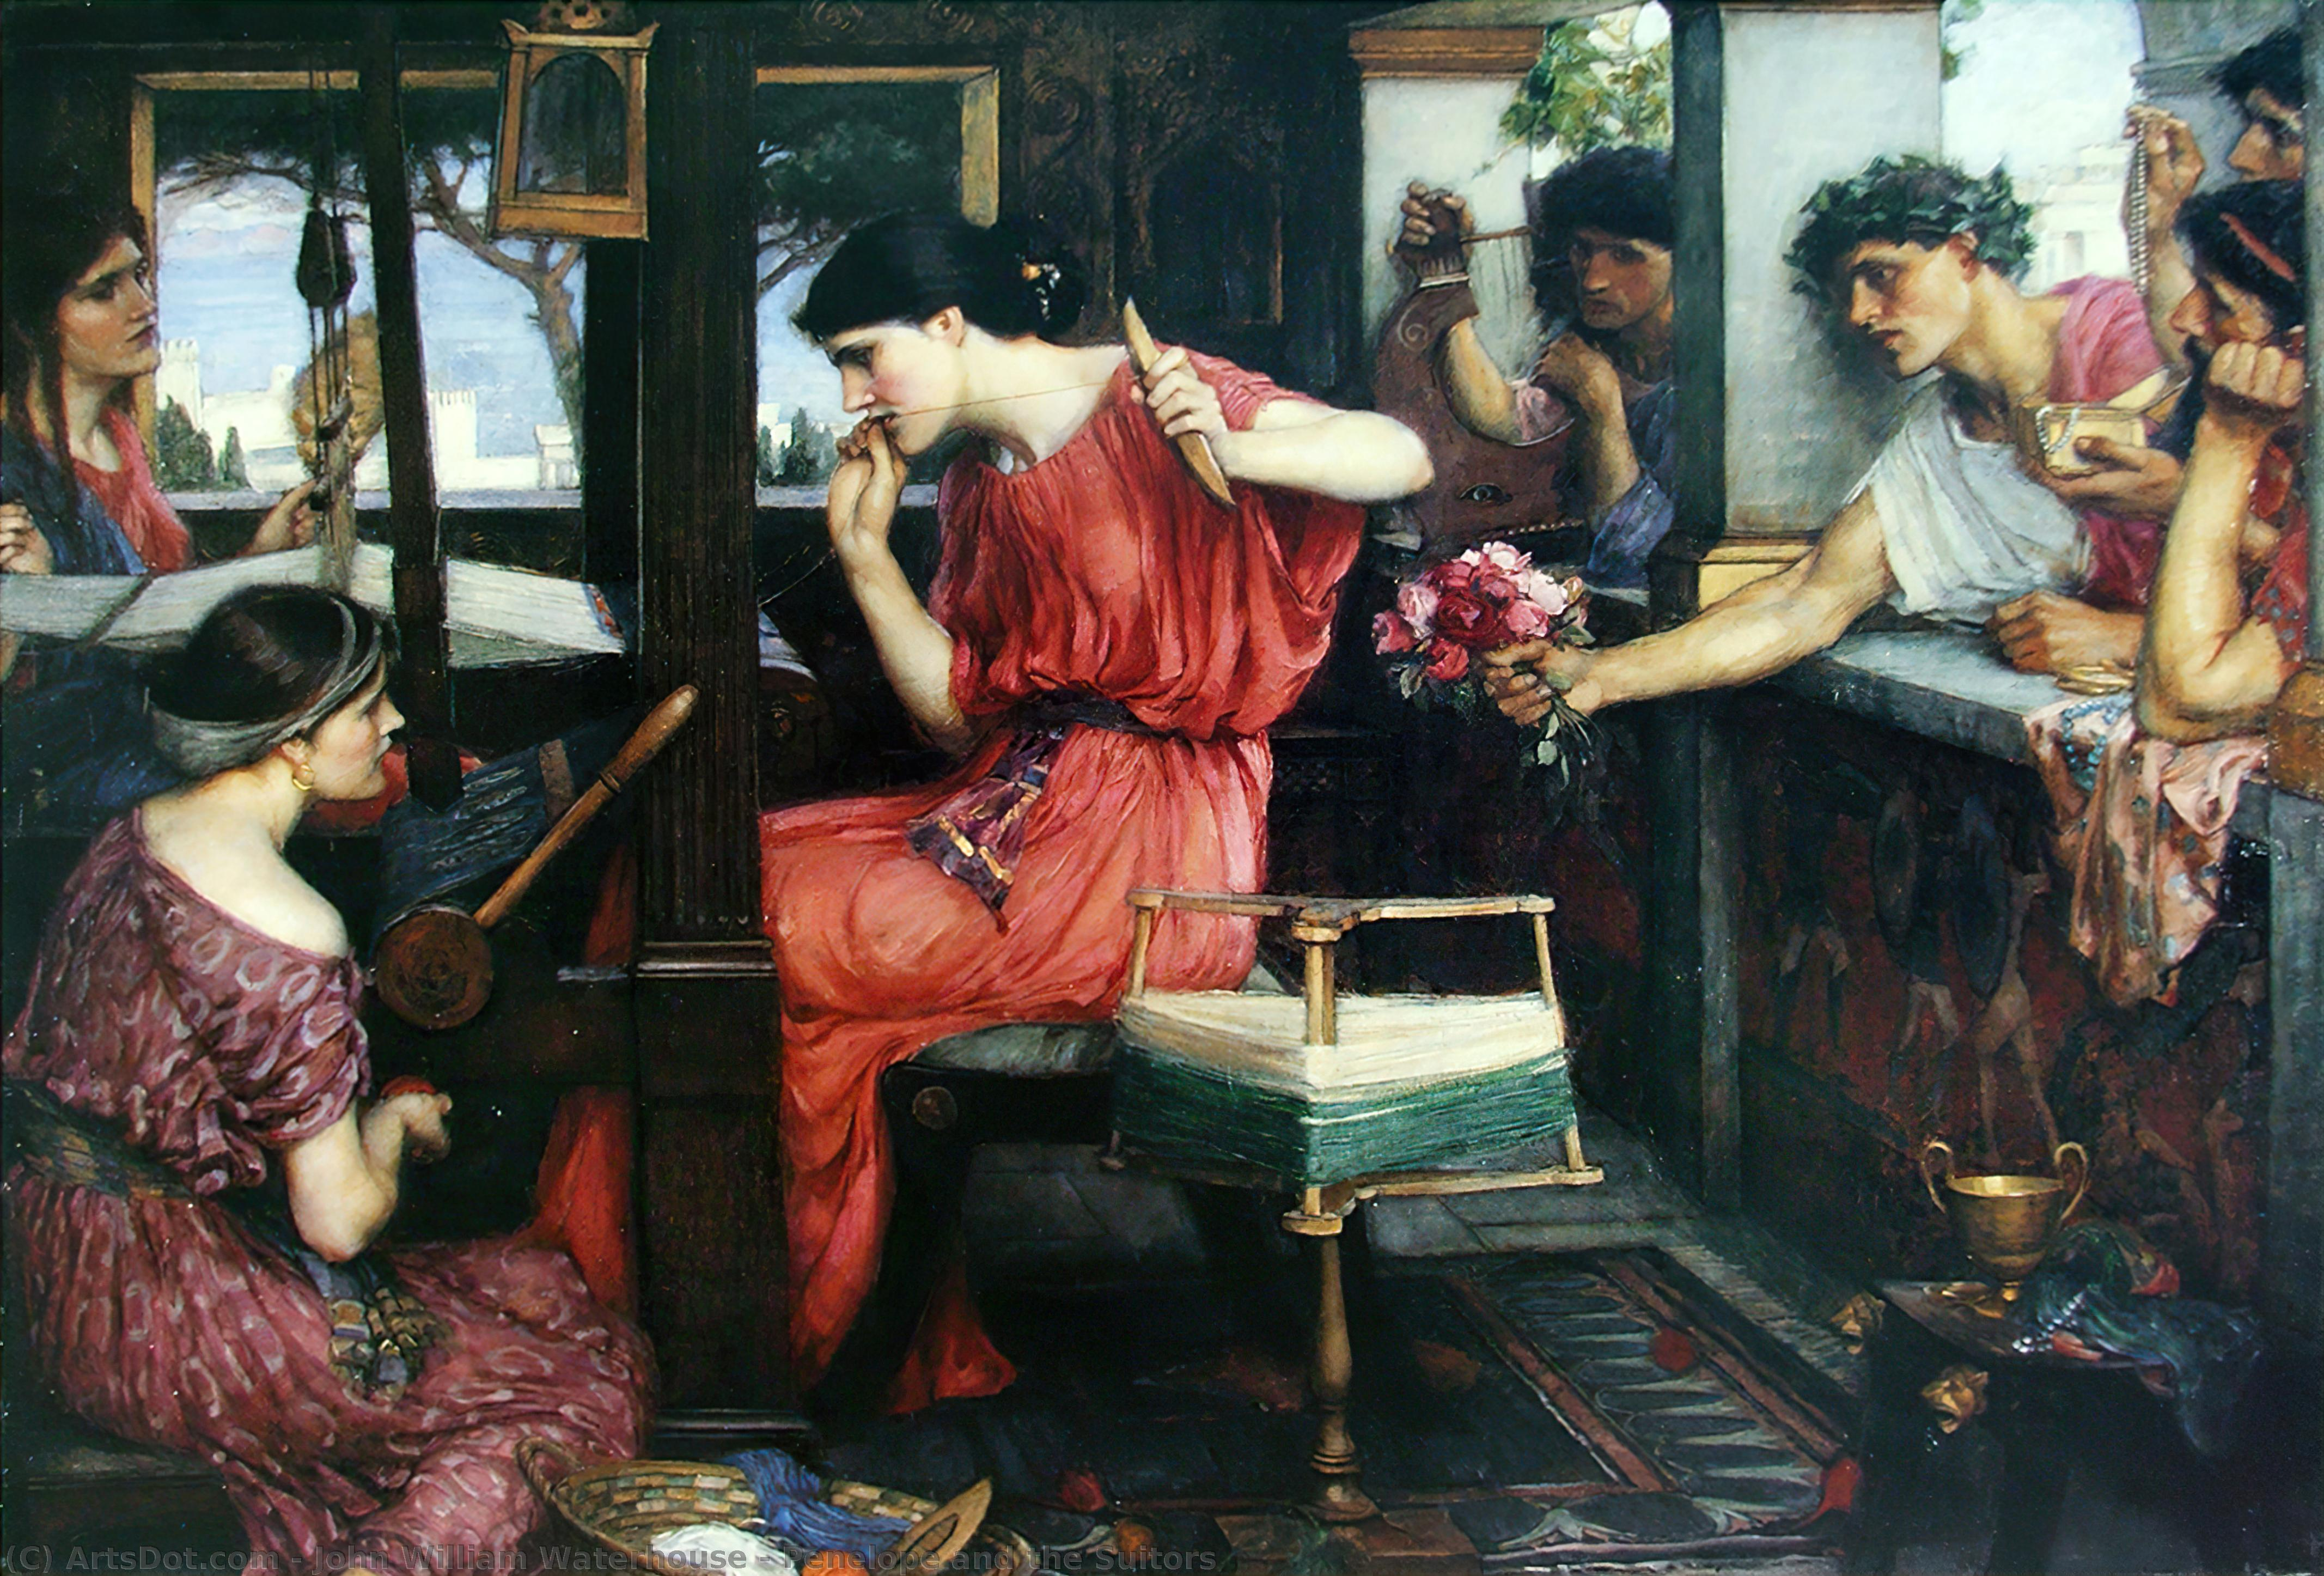 Pénélope et les prétendants, 1912 de John William Waterhouse (1849-1917, Italy) | Reproductions D'œuvres D'art John William Waterhouse | ArtsDot.com